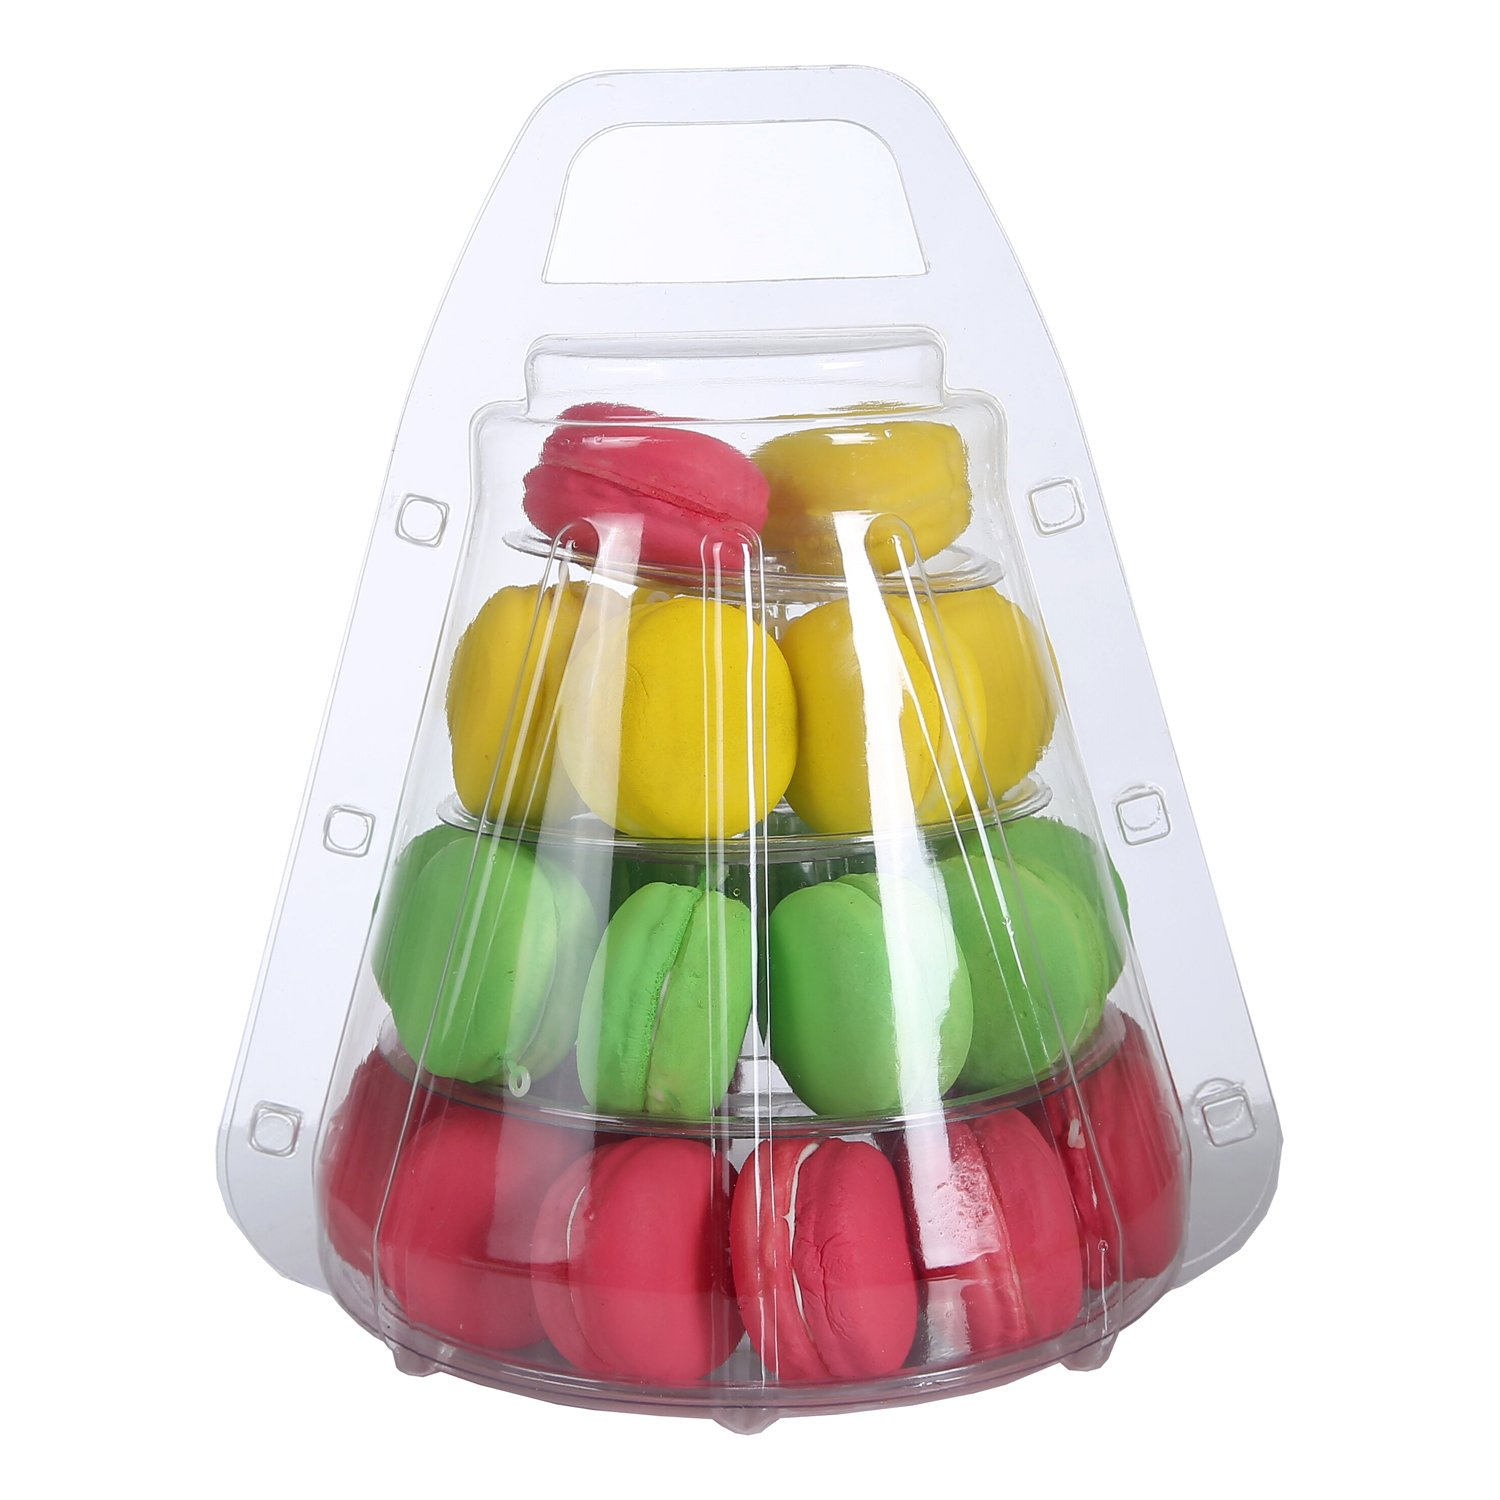 Clear-4 Tier Lightweight Plastic Macaron Tower Display With Carrying Case